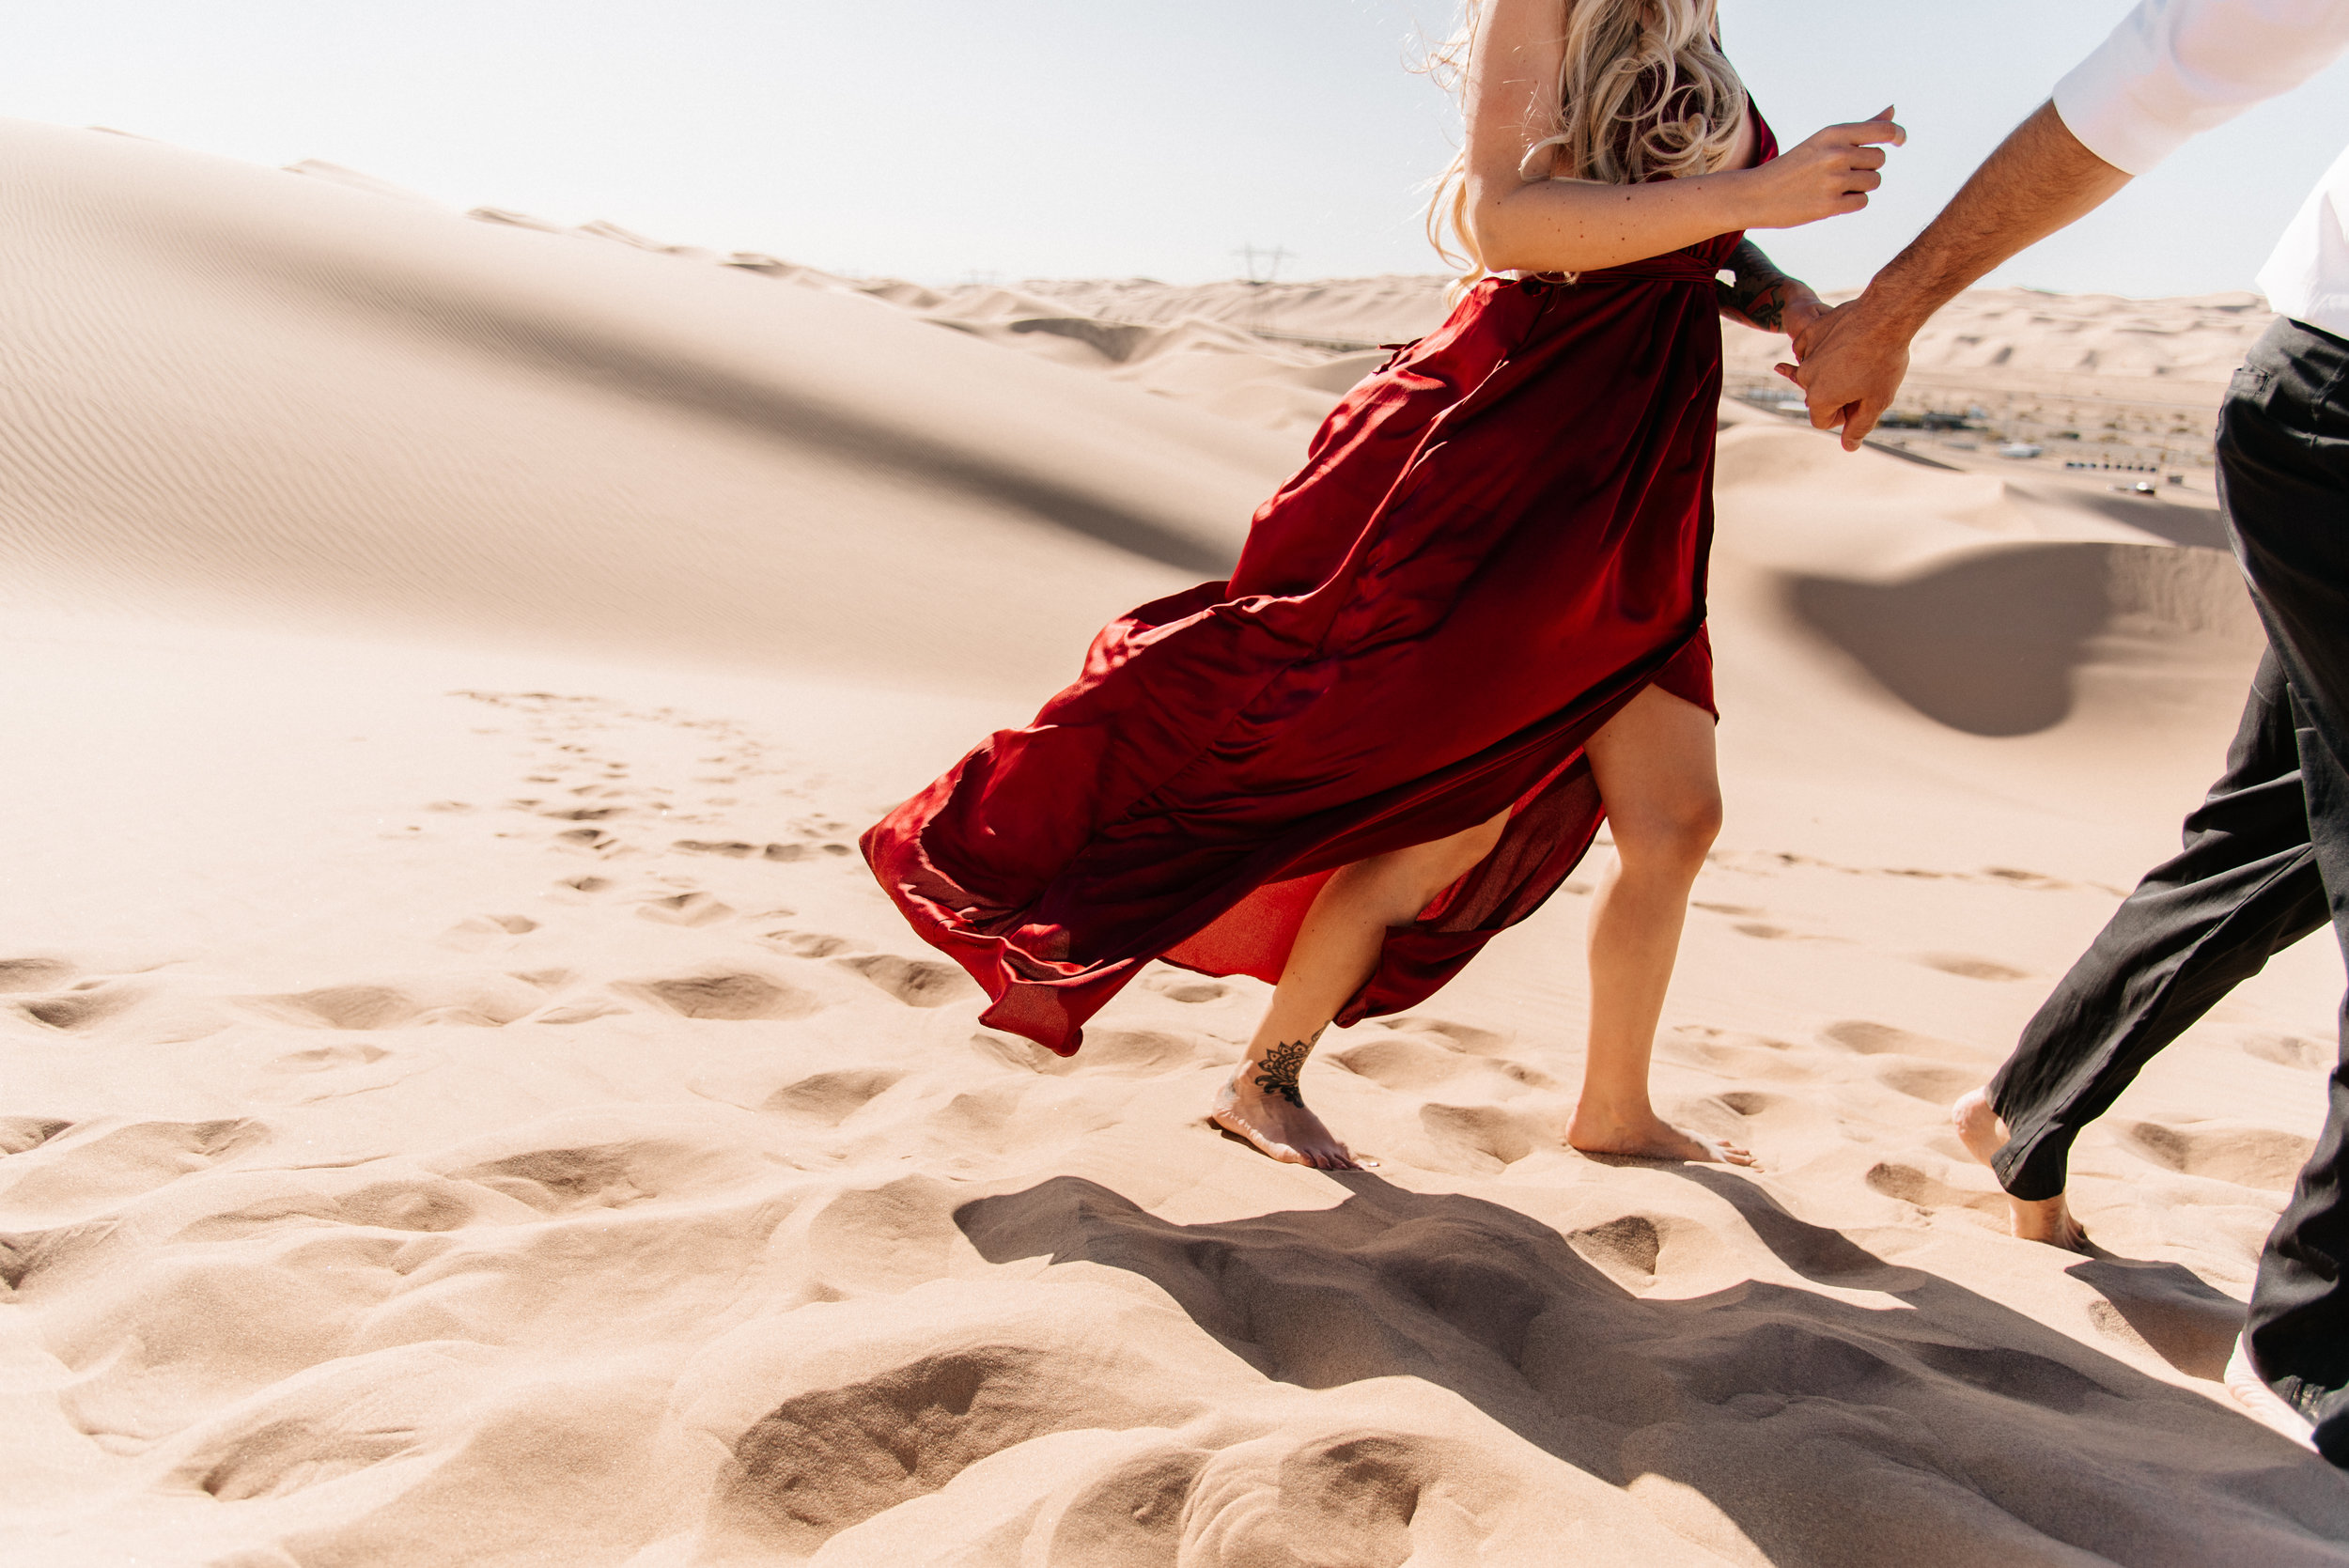 SamErica Studios - Modern San Diego Engagement Photographer - Adventure Engagement Session in Glamis Sand Dunes California-11.jpg